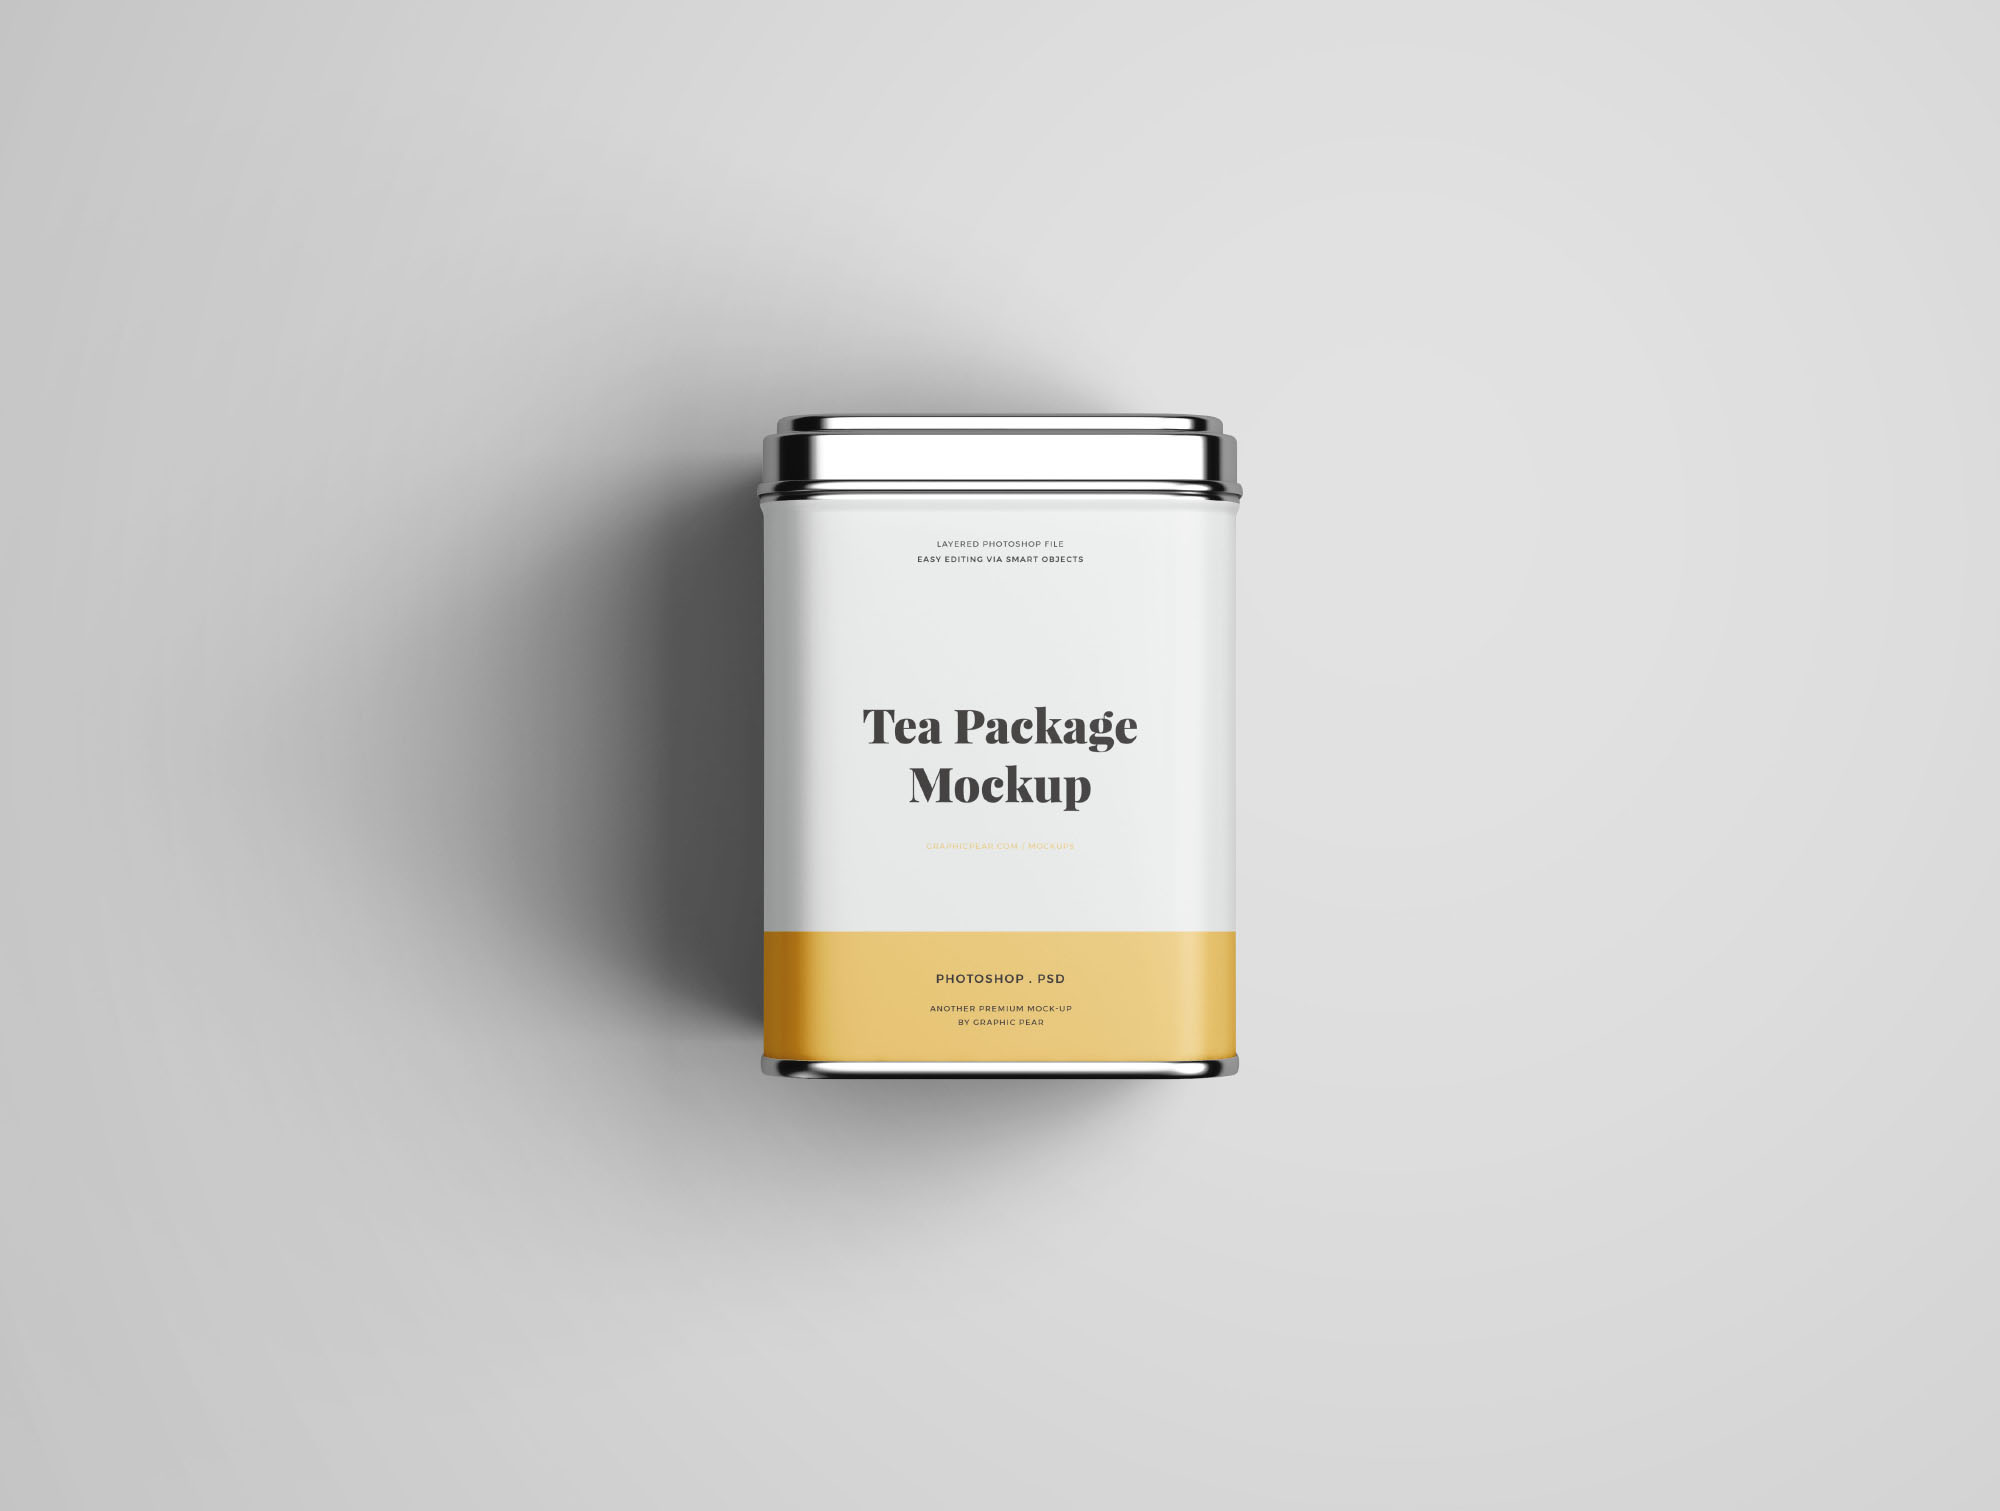 Tea Package Mockup - Top VIew